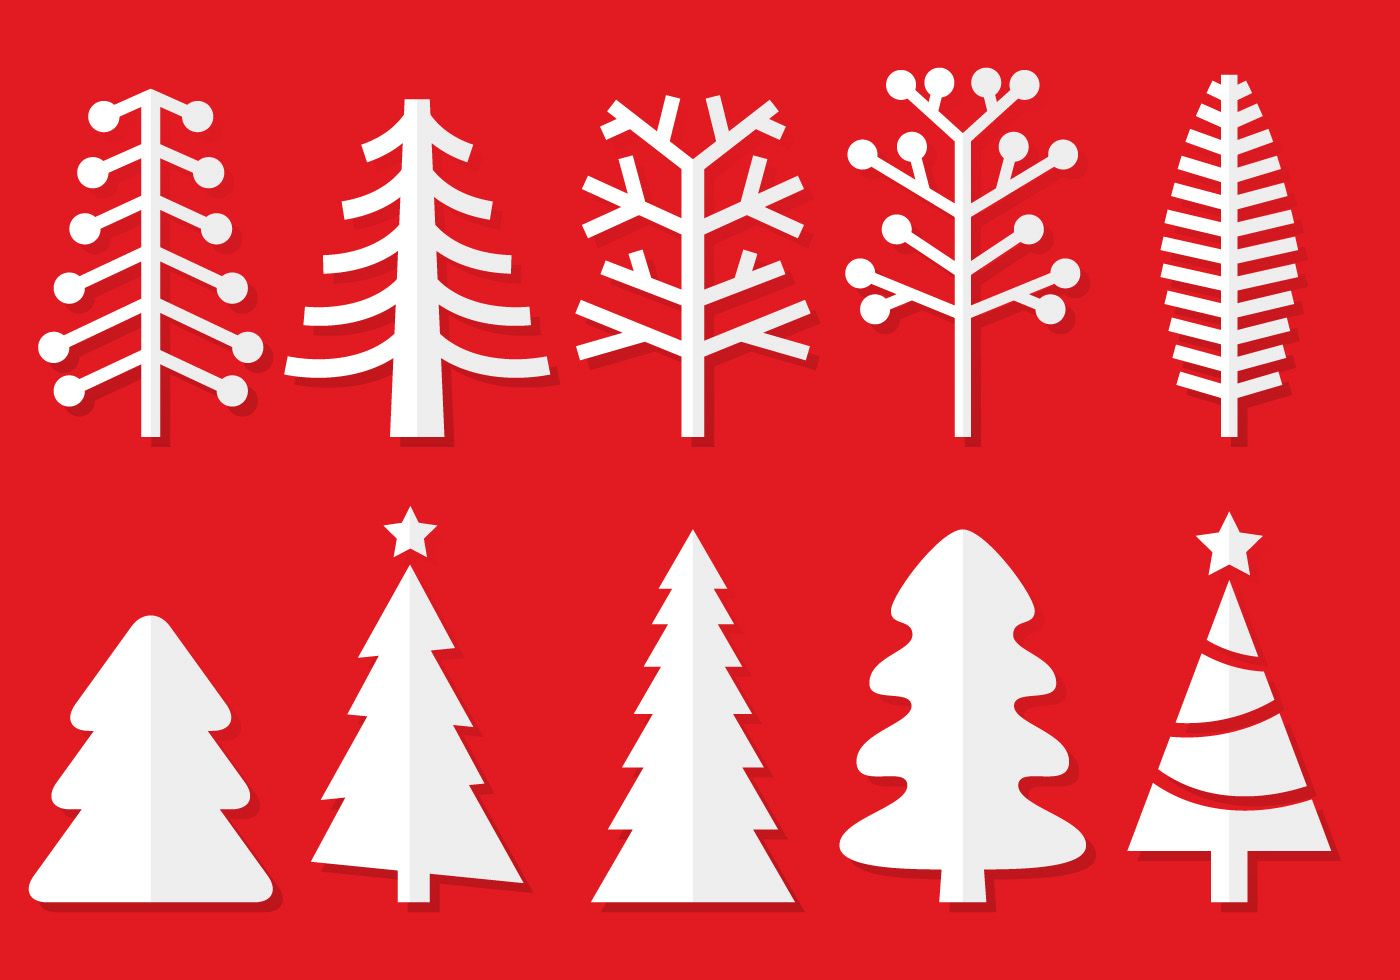 If you need some Christmas tree silhouettes with a paper